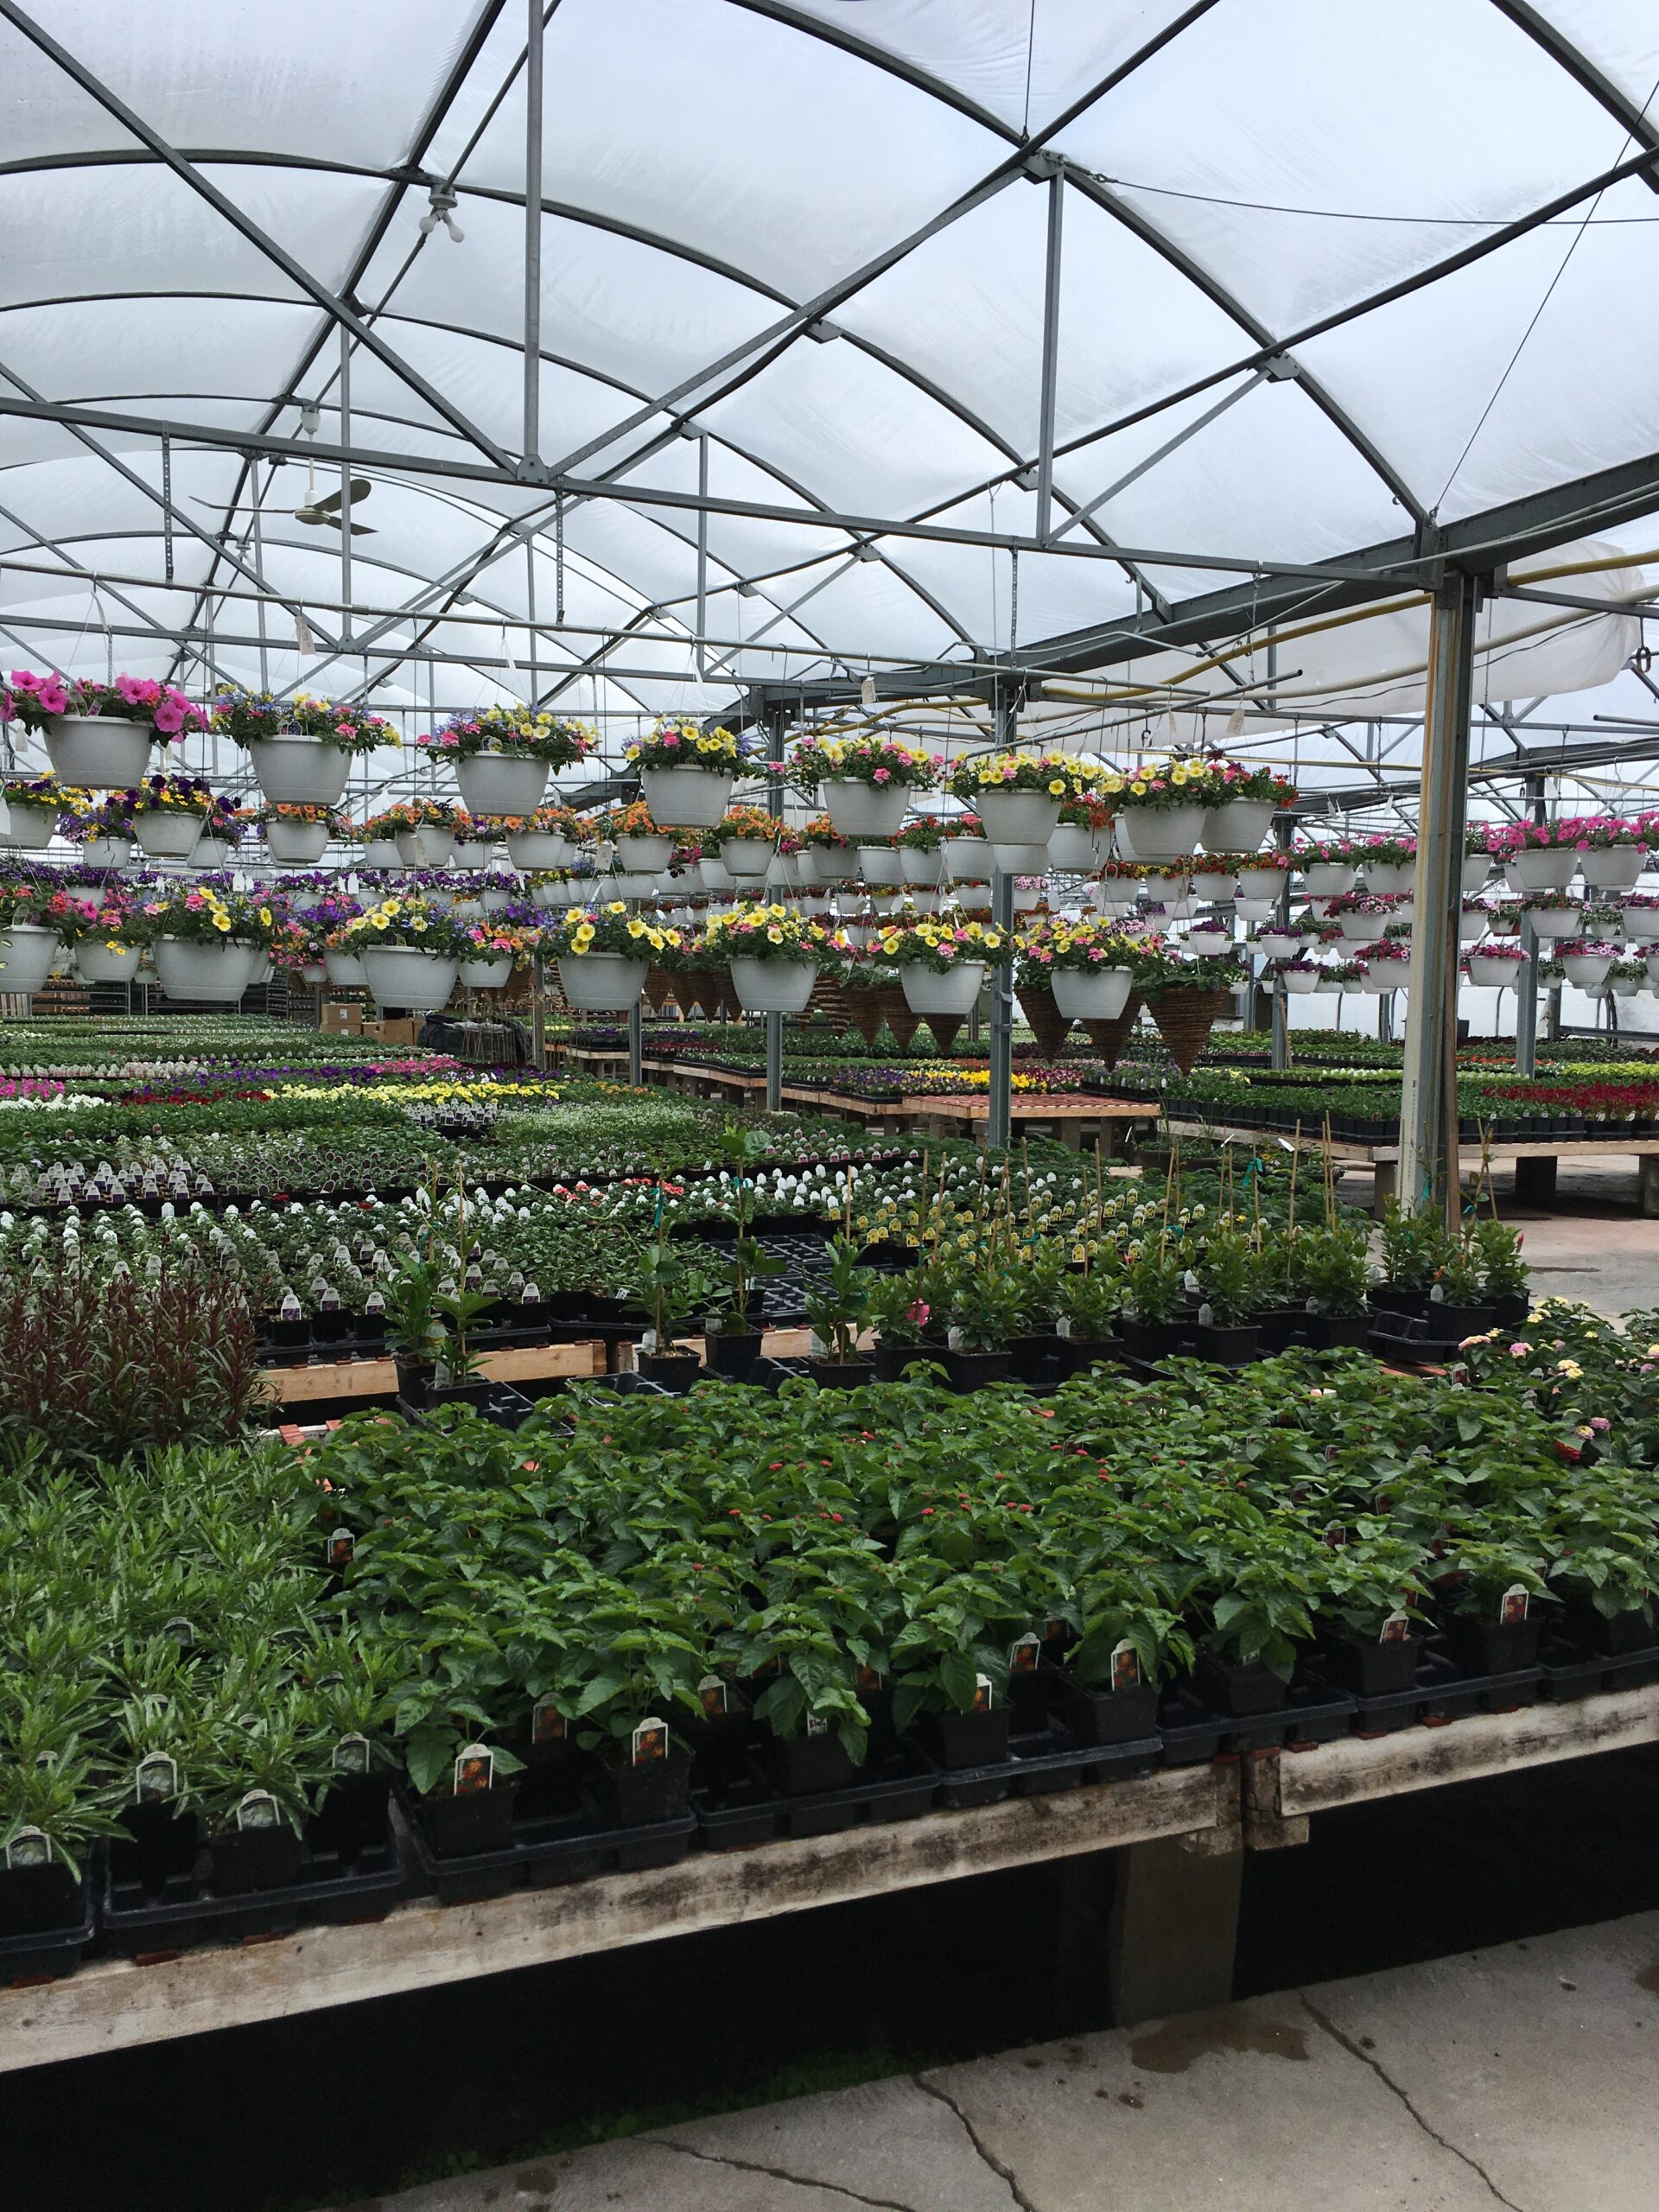 Greenhouses Fully Open on Monday, May 10th